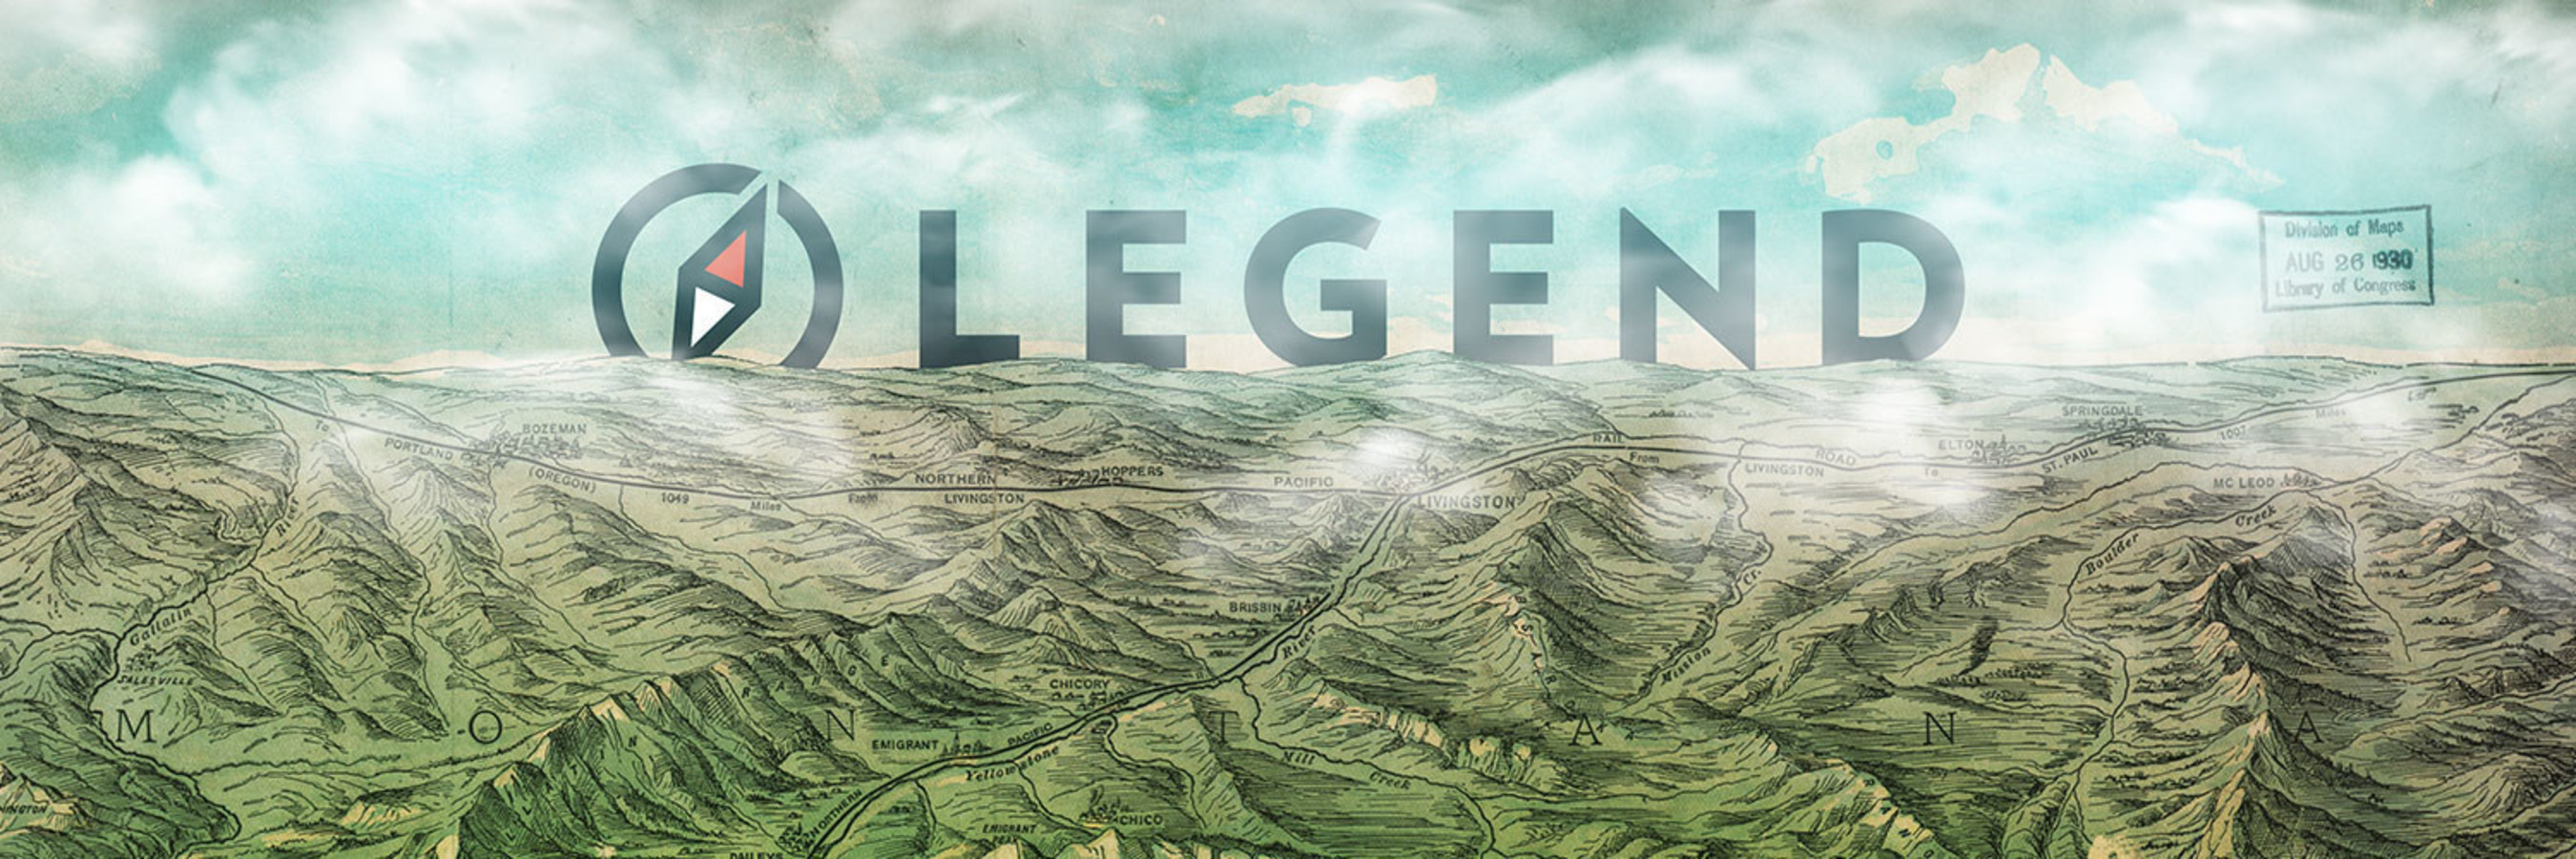 Legend Launches as Digital + Communications Company